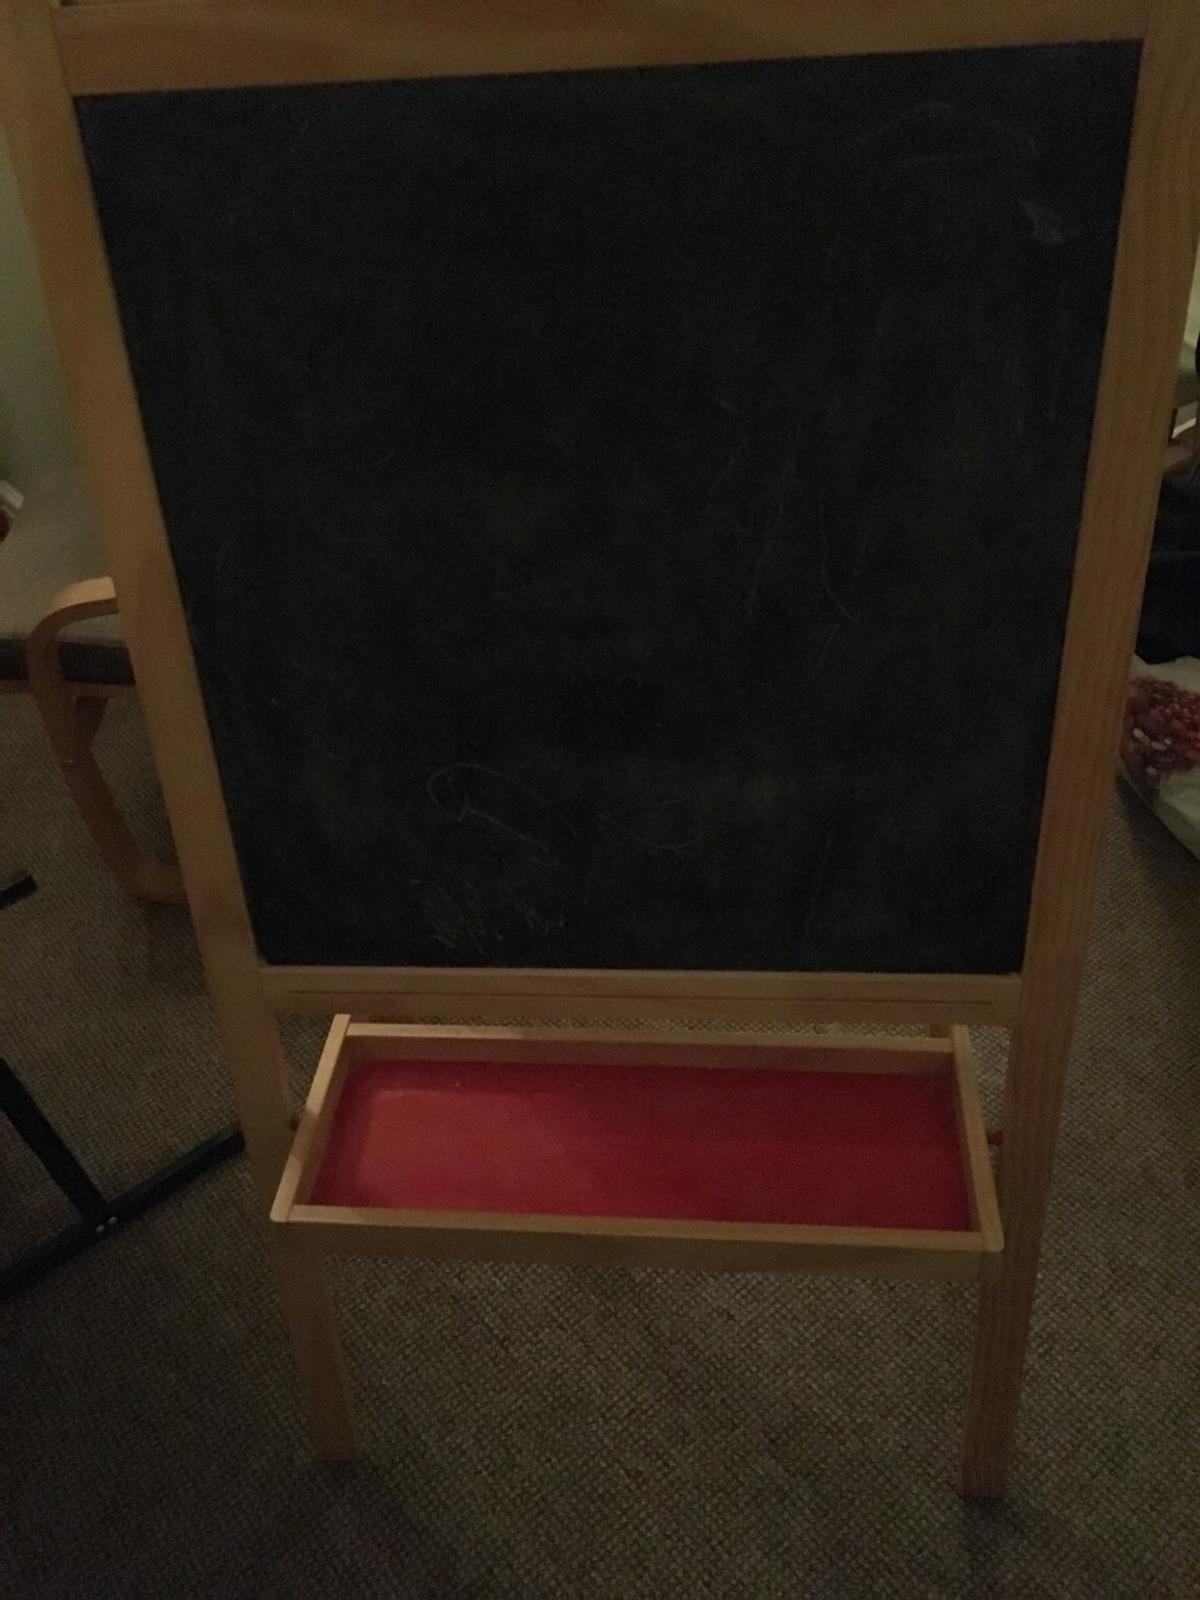 Ikea Chalk Whiteboard Easel Eraser Pens In Sk16 Tameside For 5 00 For Sale Shpock